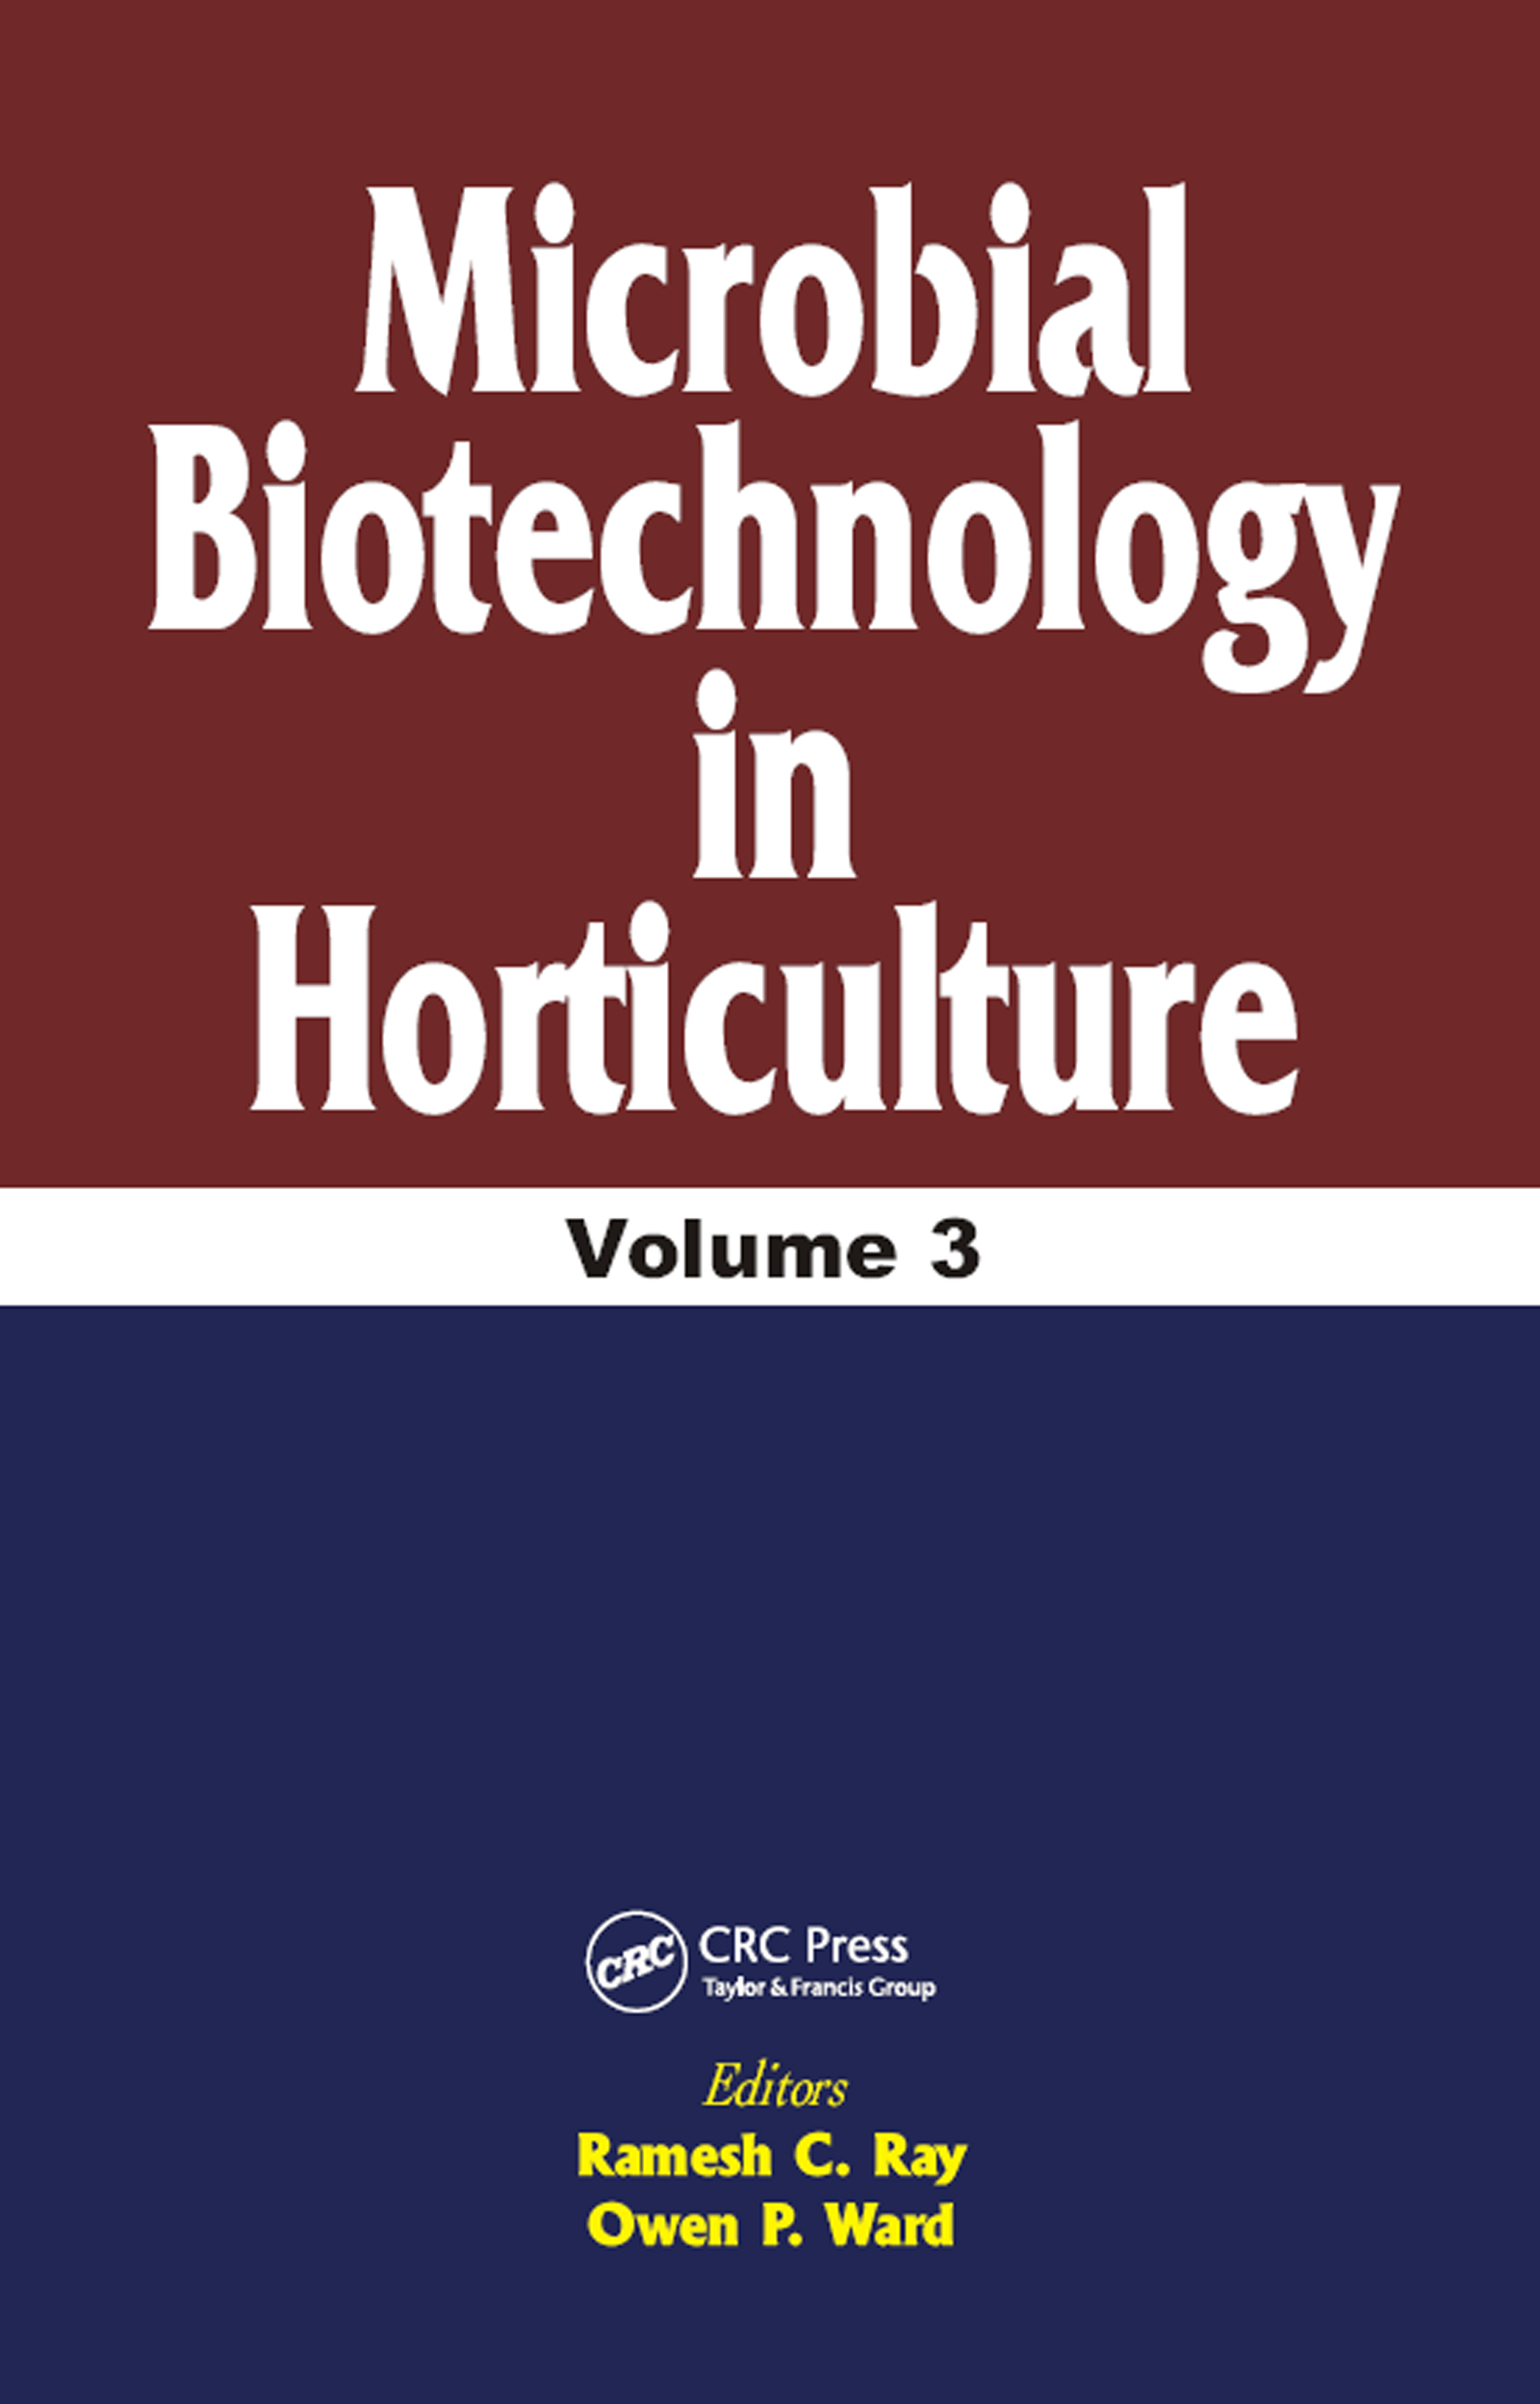 Commercialization of Microbial Biotechnology in Horticulture: Summary Outlook of Achievements, Constraints and Prospects